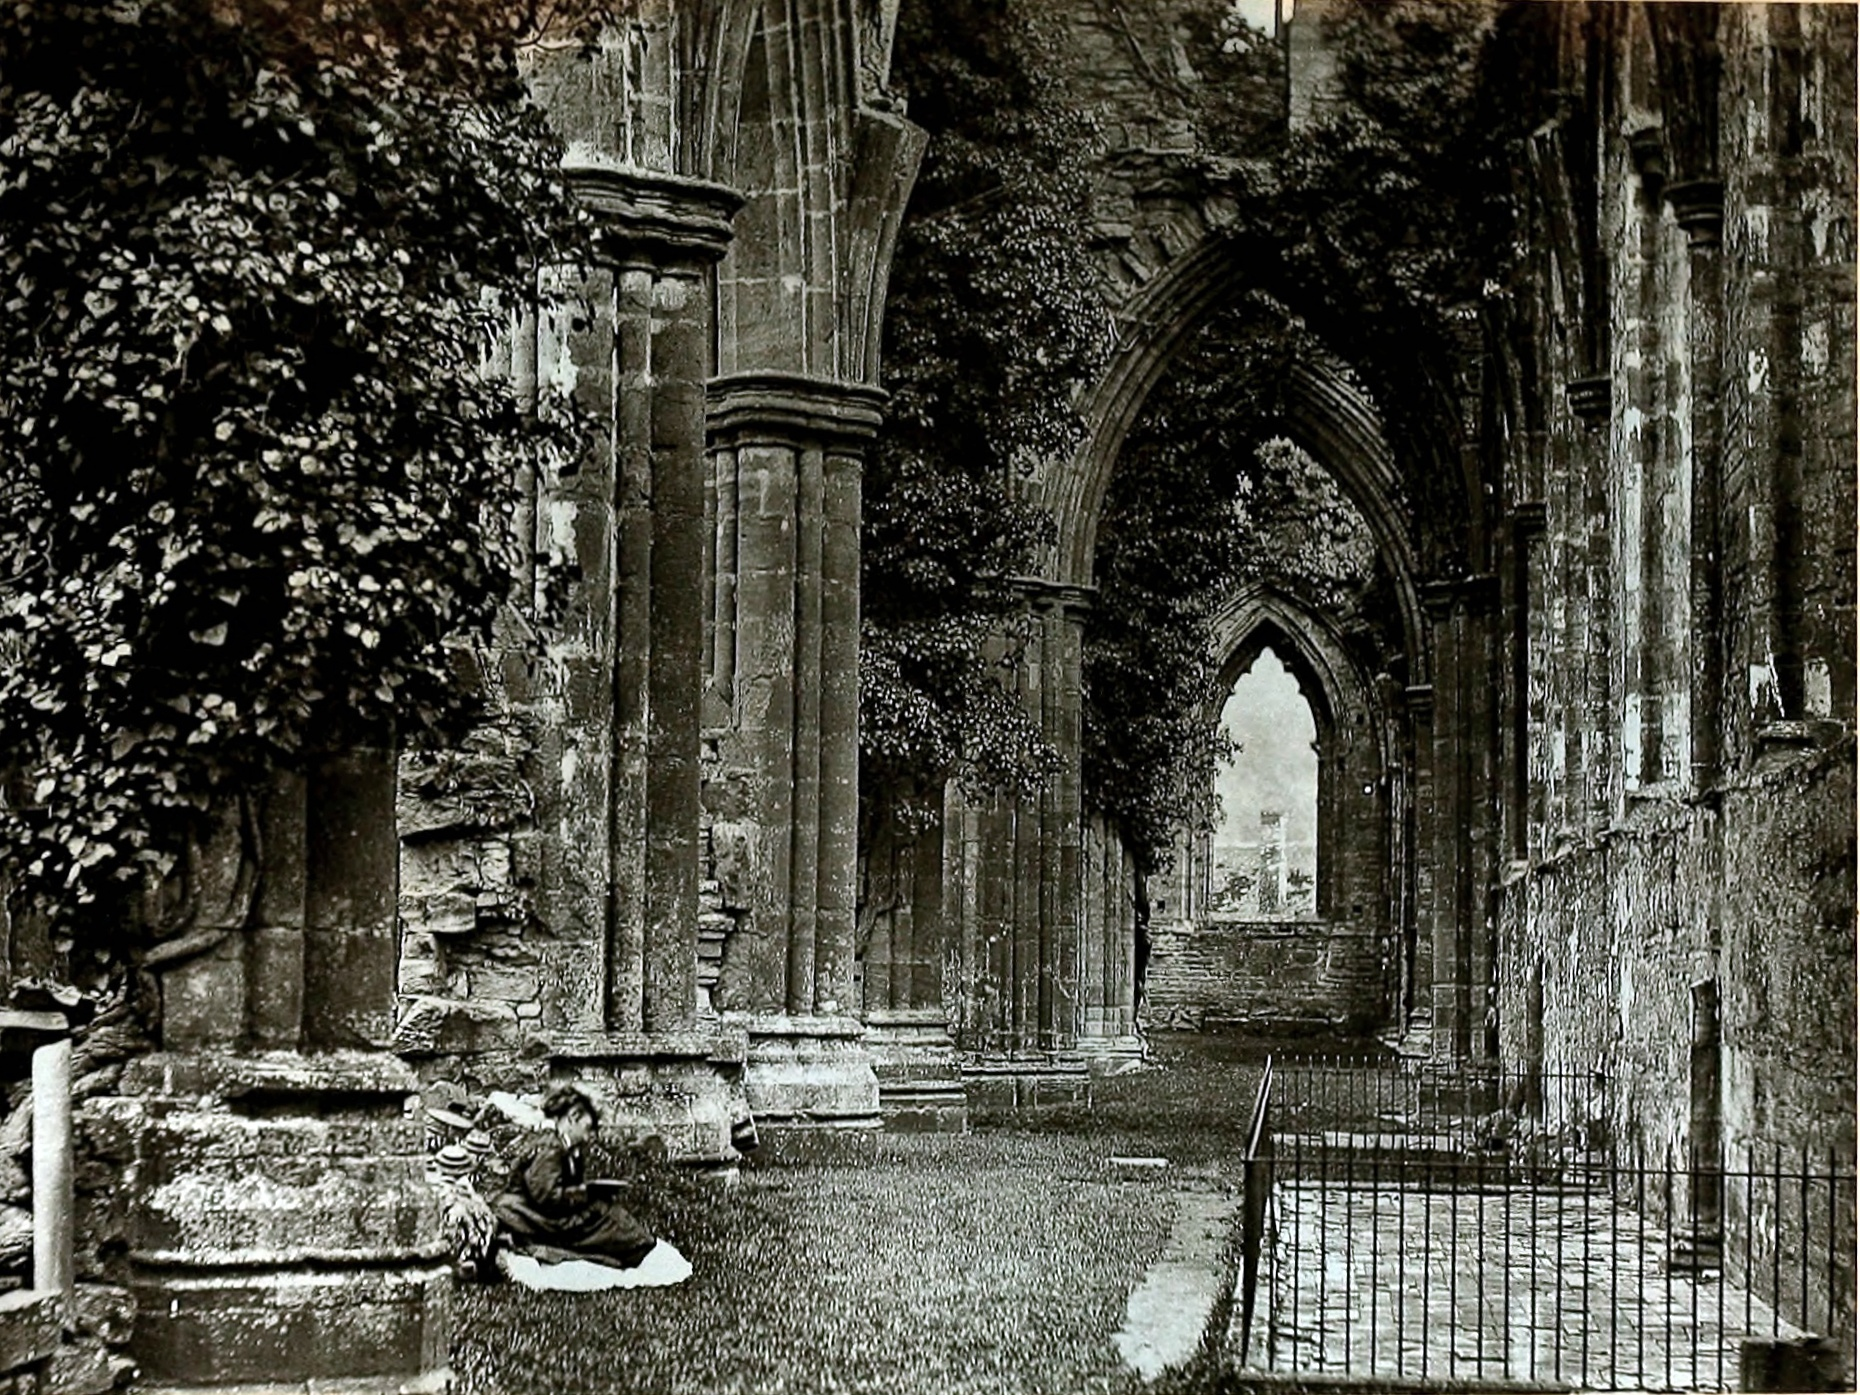 Reading at Tintern Abbey, Wales about 1875 by King